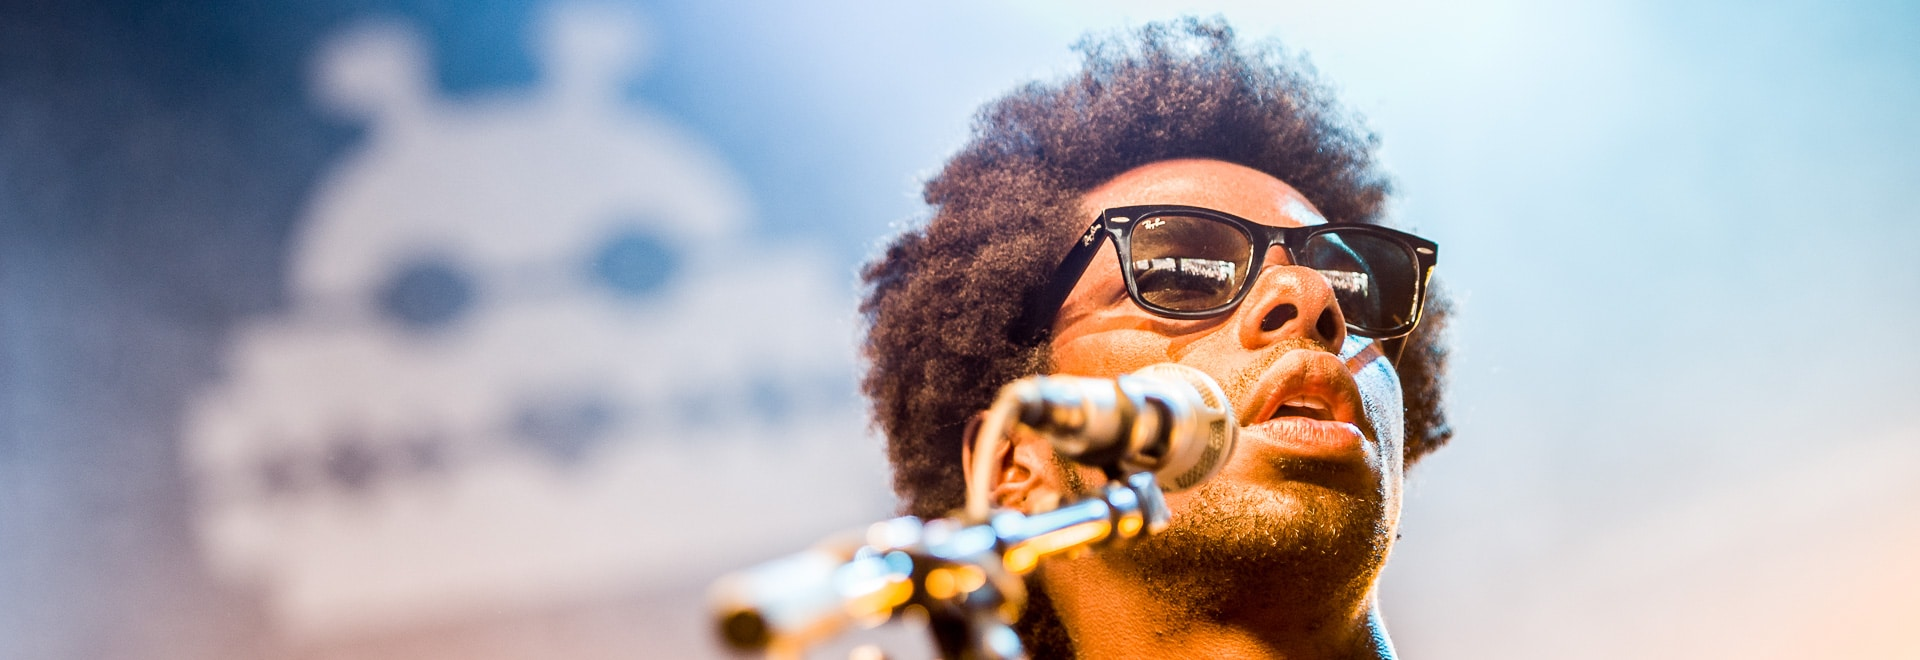 Curtis Harding op Lowlands festival 2015 - ©Jelmer de Haas - All Rights Reserved